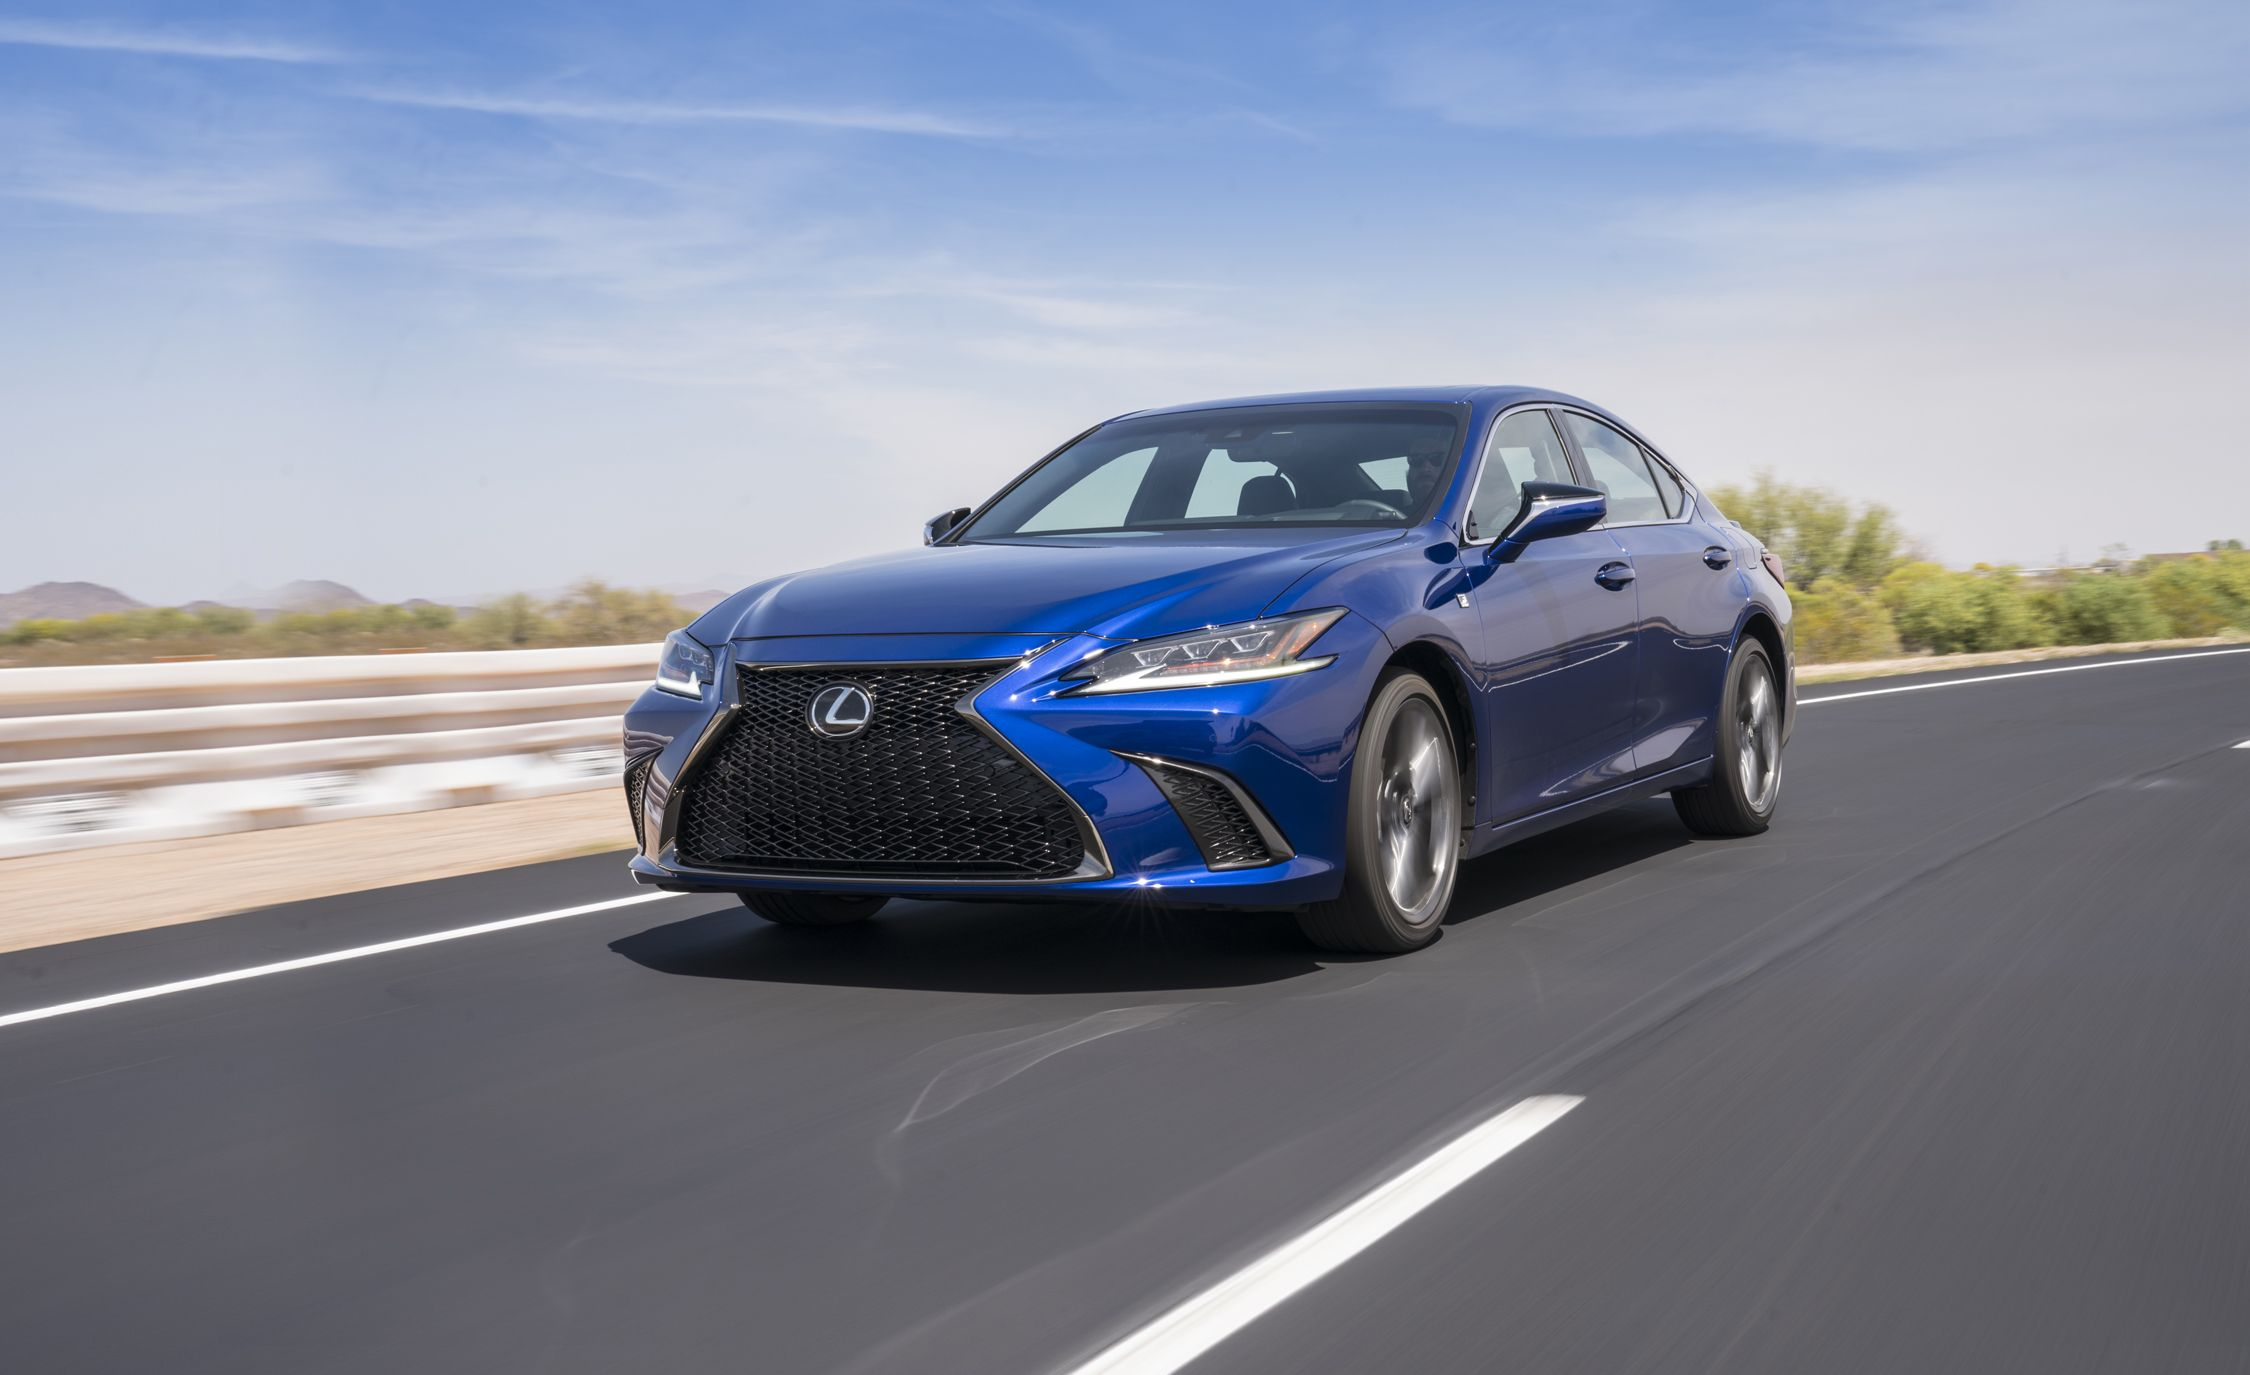 Elegant 2019 Lexus ES: It Actually Looks Pretty Darn Good